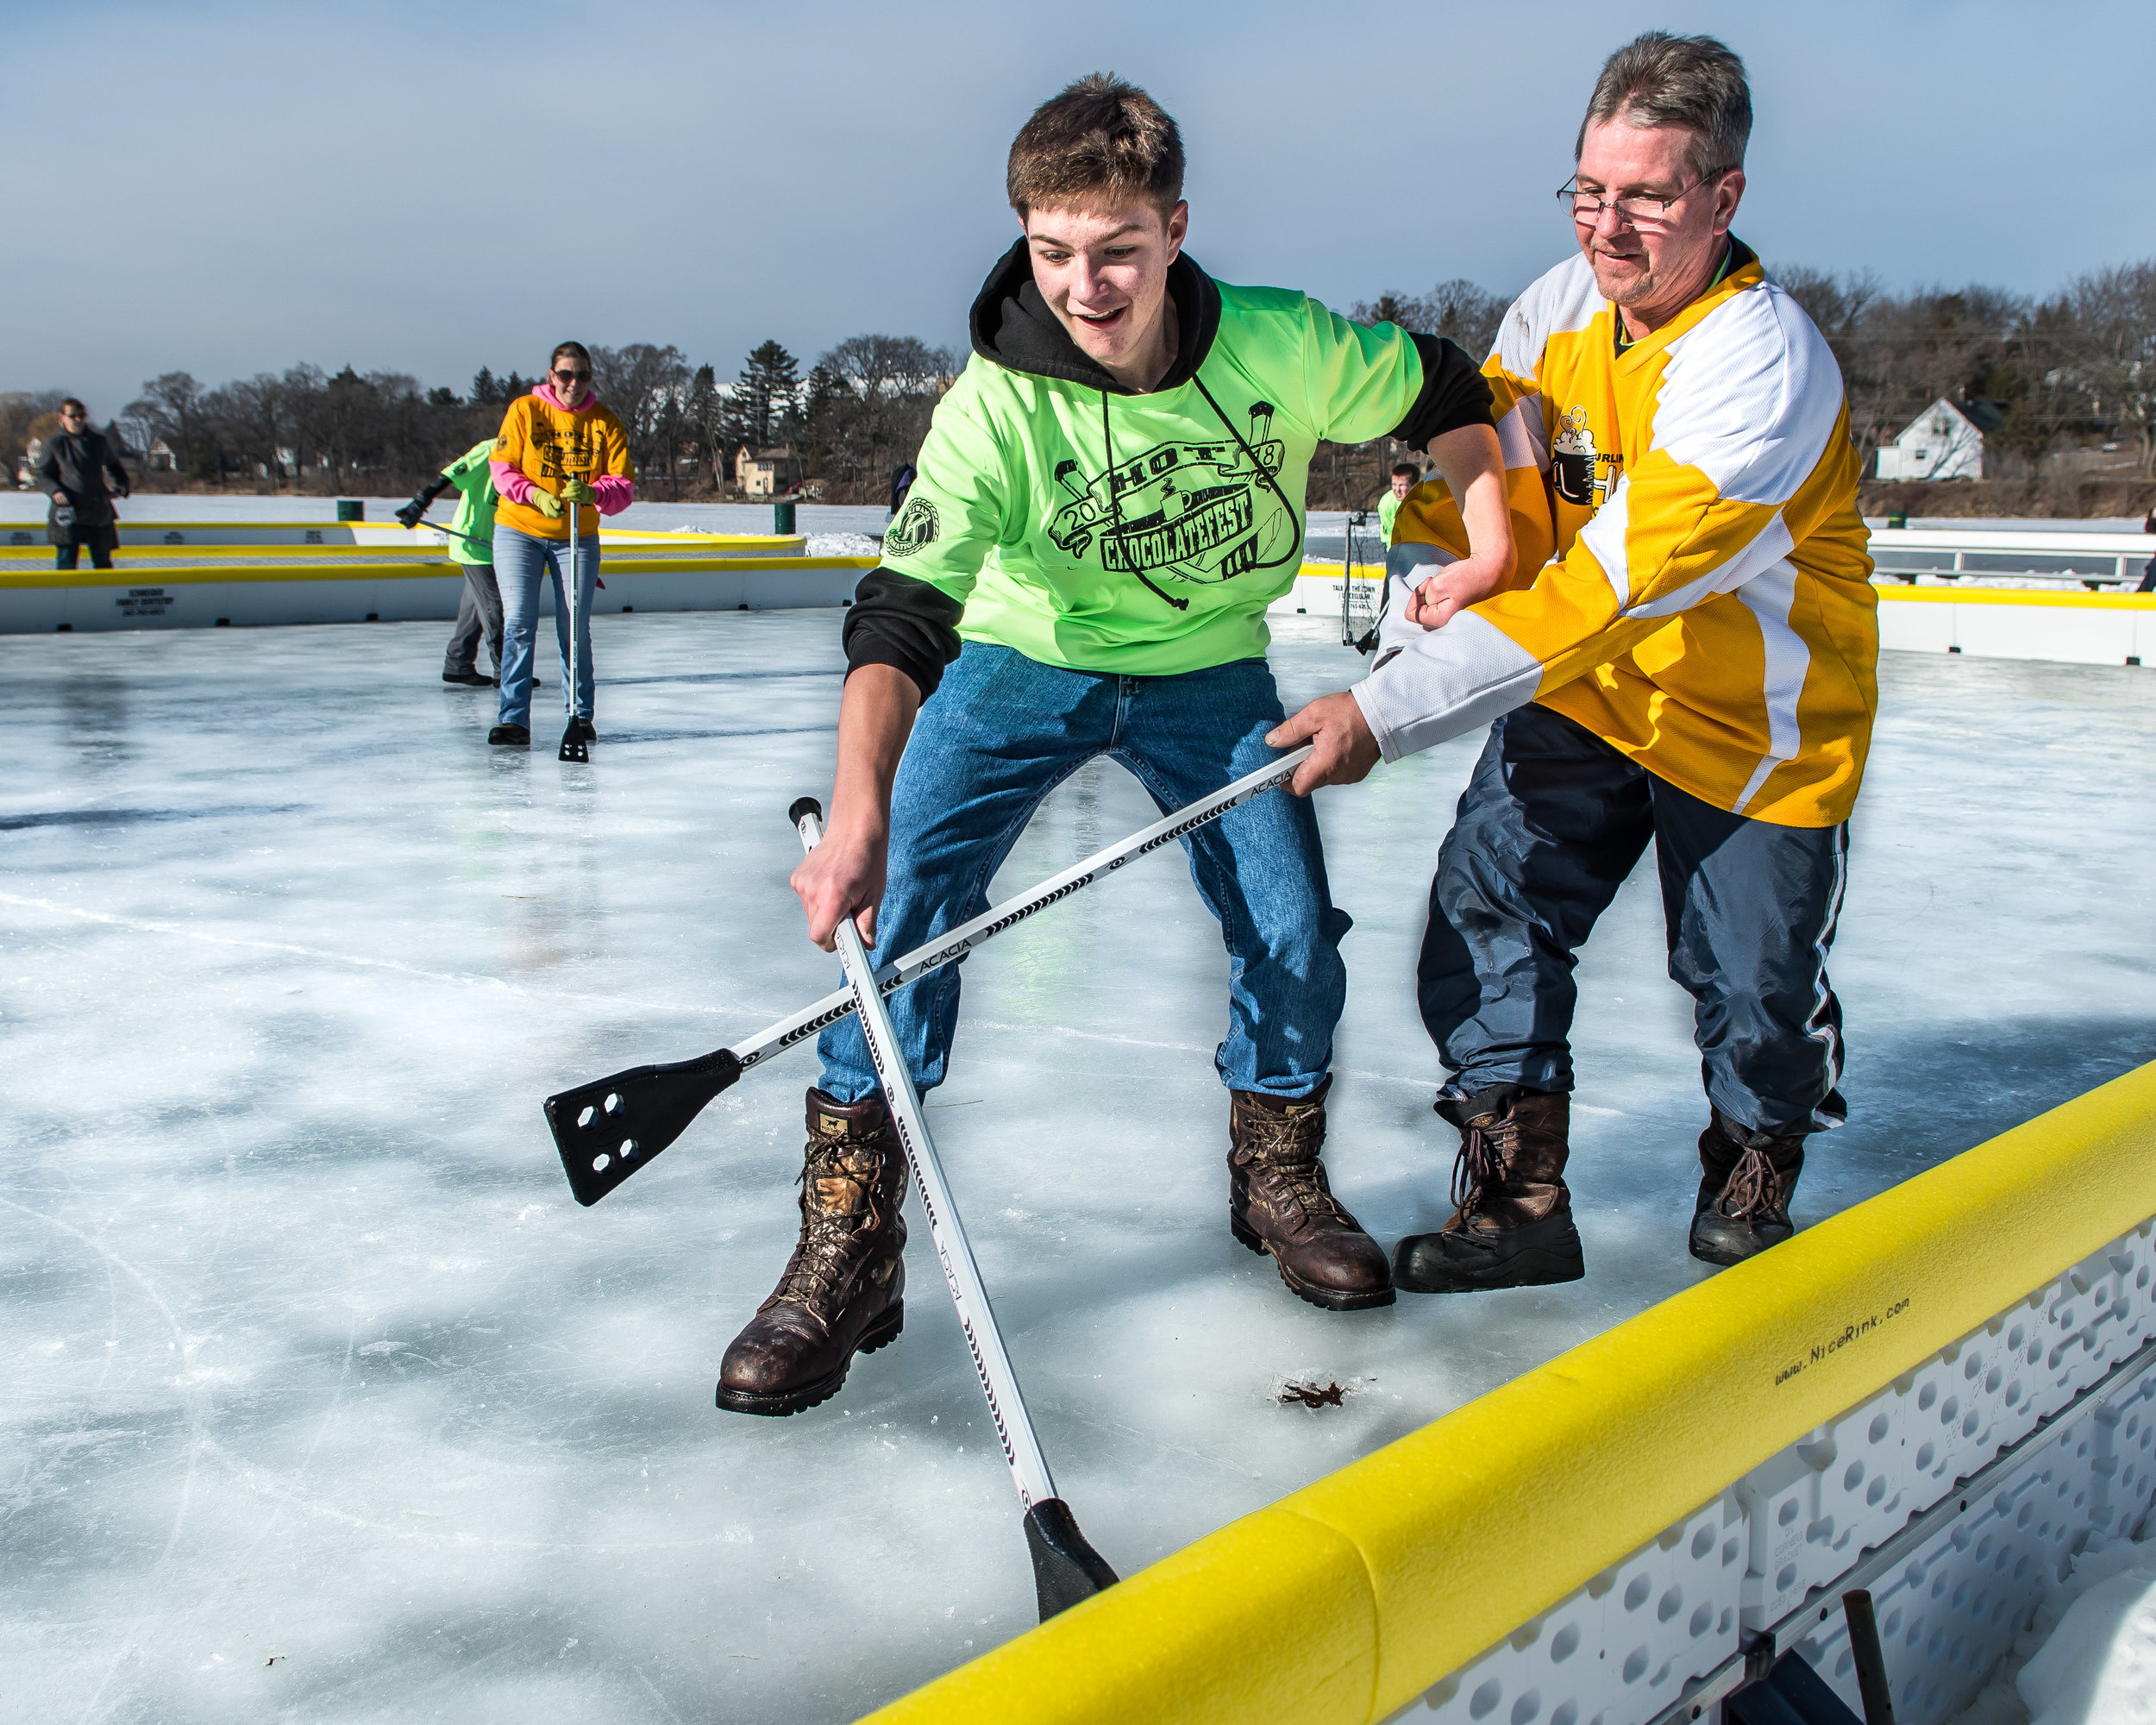 Matthew Oliver, 14, attempts to swipe the ball away from Bob Prailes during an adults versus kids game of Broom Ball on Echo Lake during Burlington's Hot Chocolatefest Saturday afternoon.